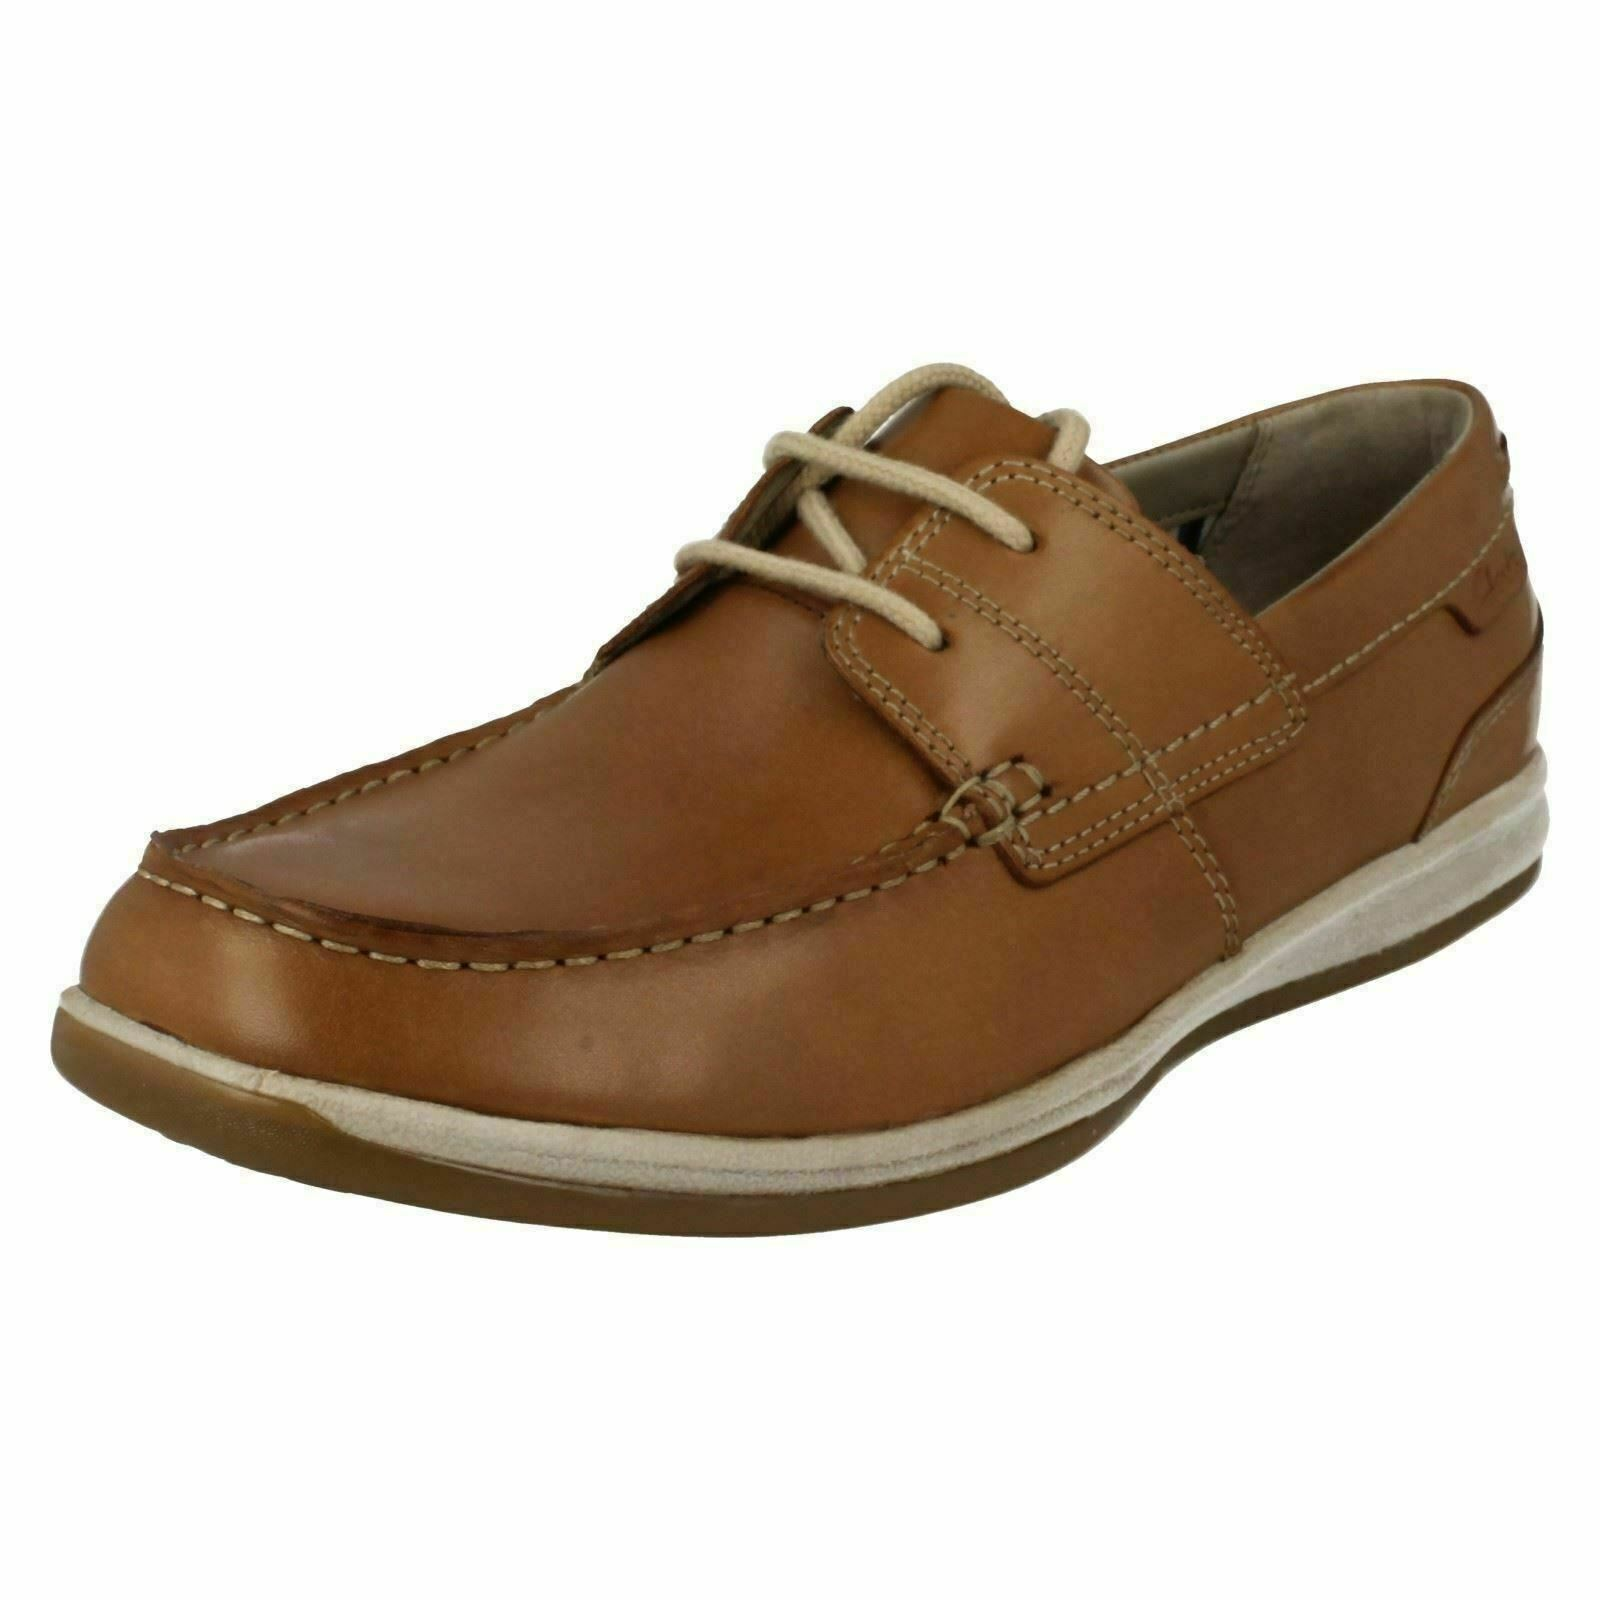 Mens Clarks Tan Moccasin Style Leather Lace-up Shoes : Fallston Style